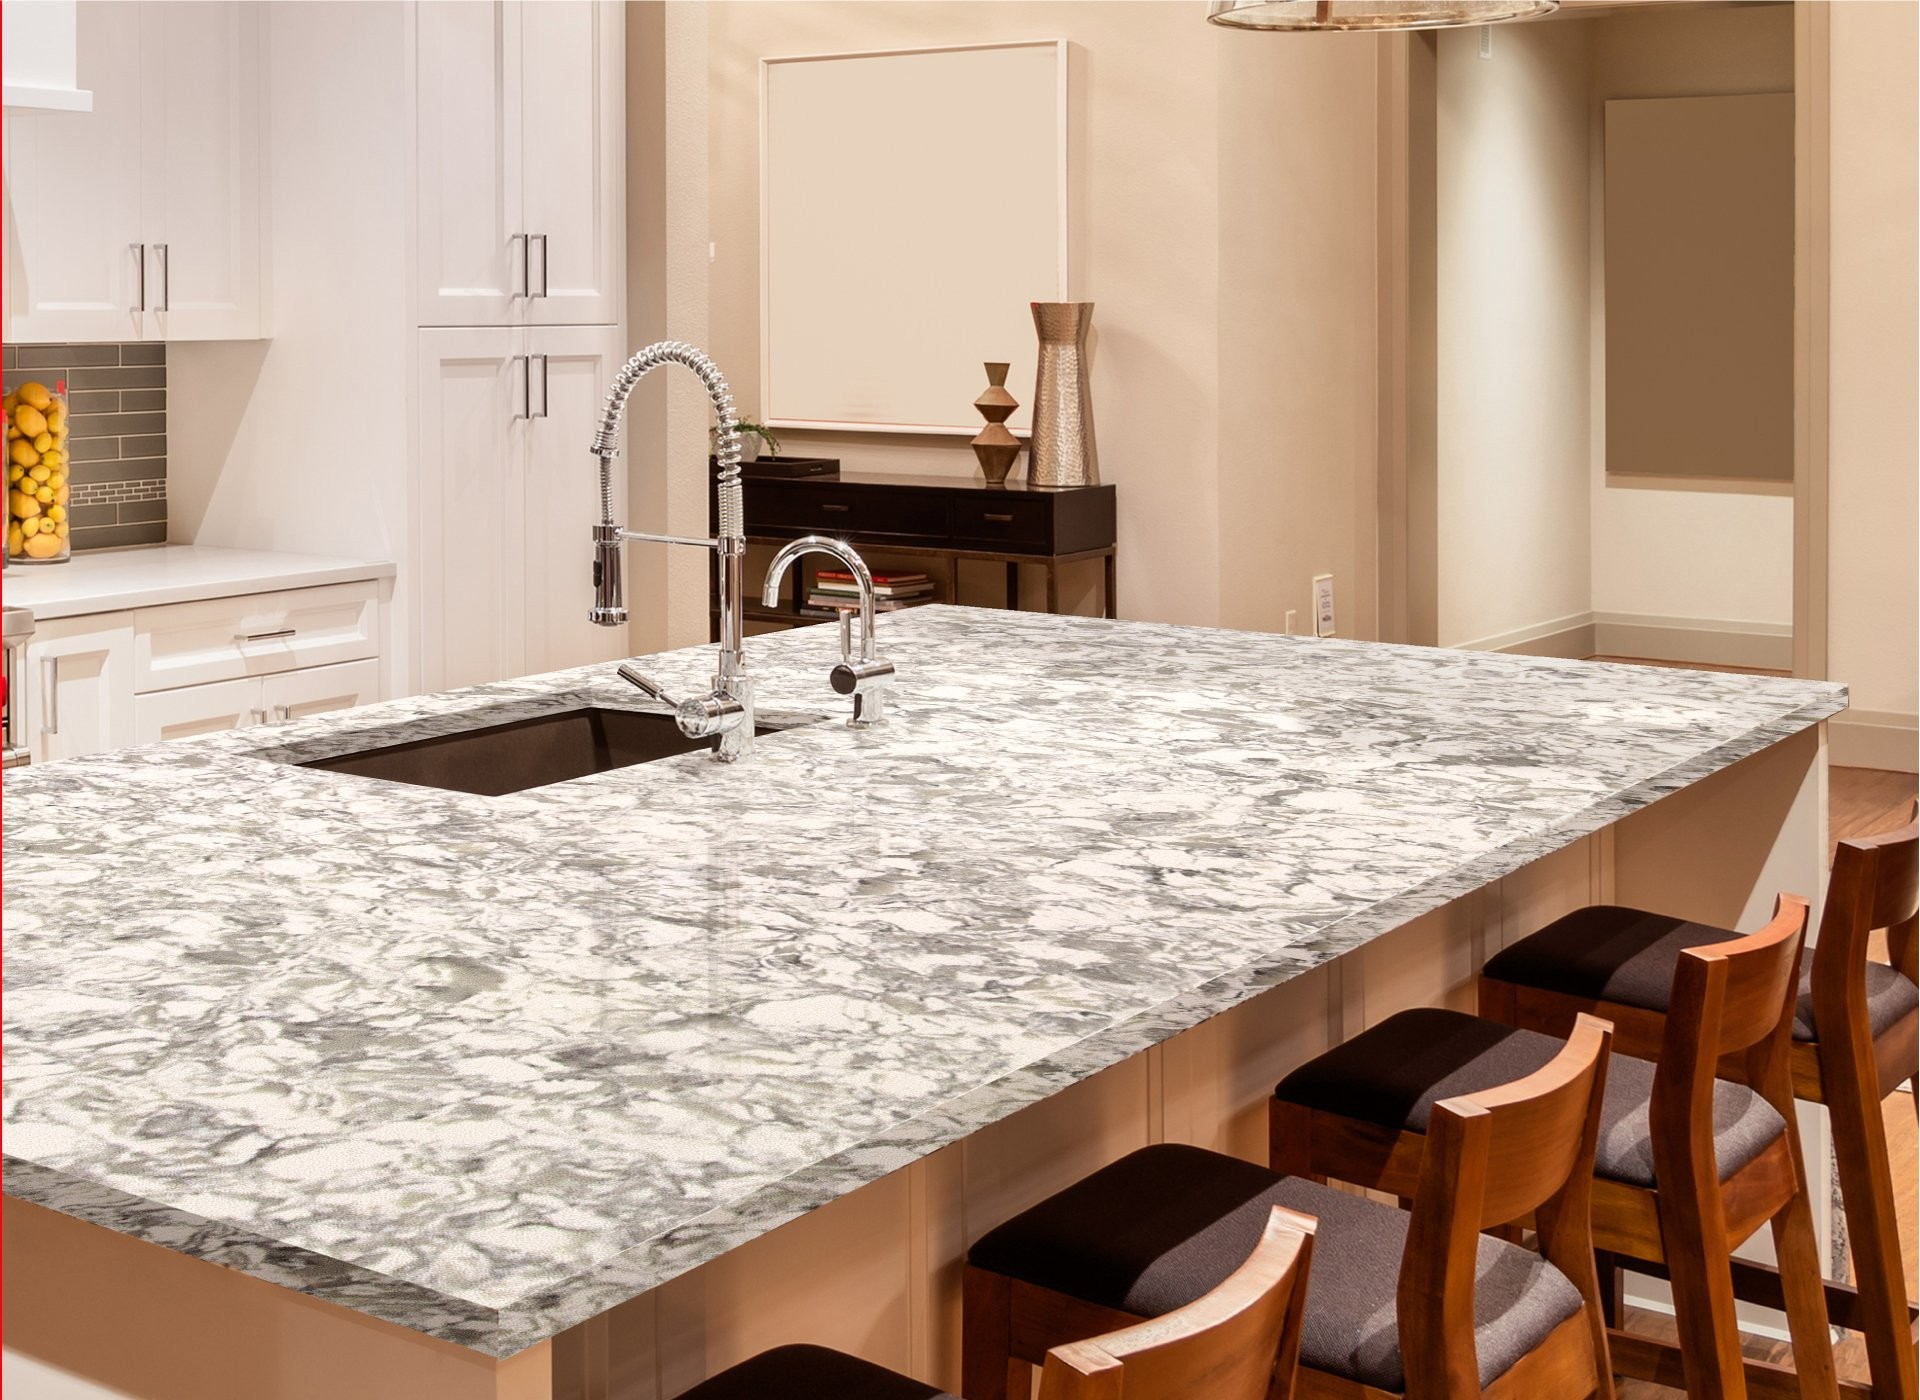 Custom Countertops | Floor & Decor on Counter Top Decor  id=97344